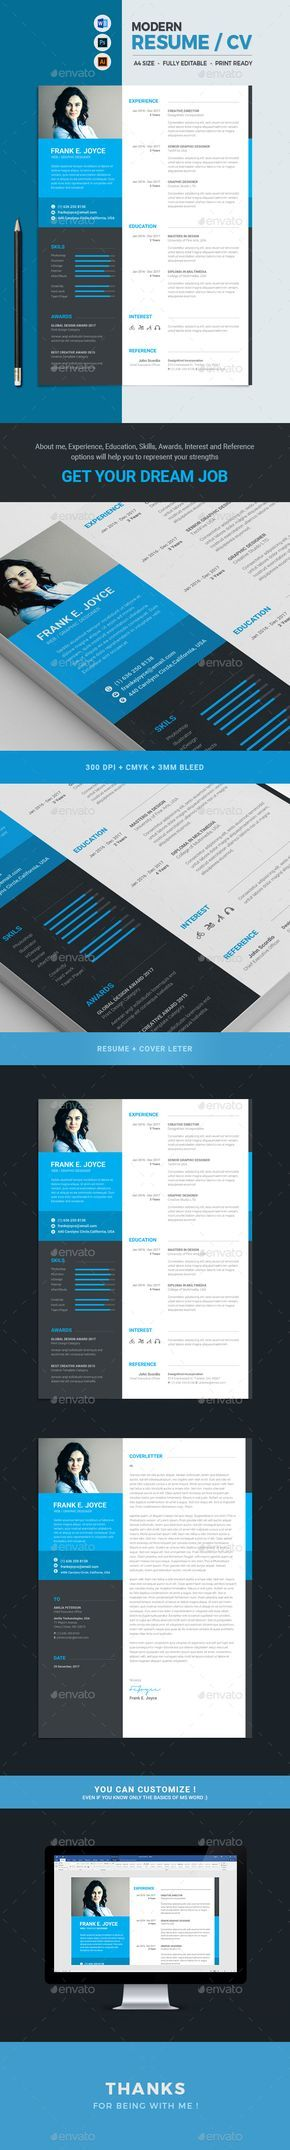 Resume 48 best Resume Design images on